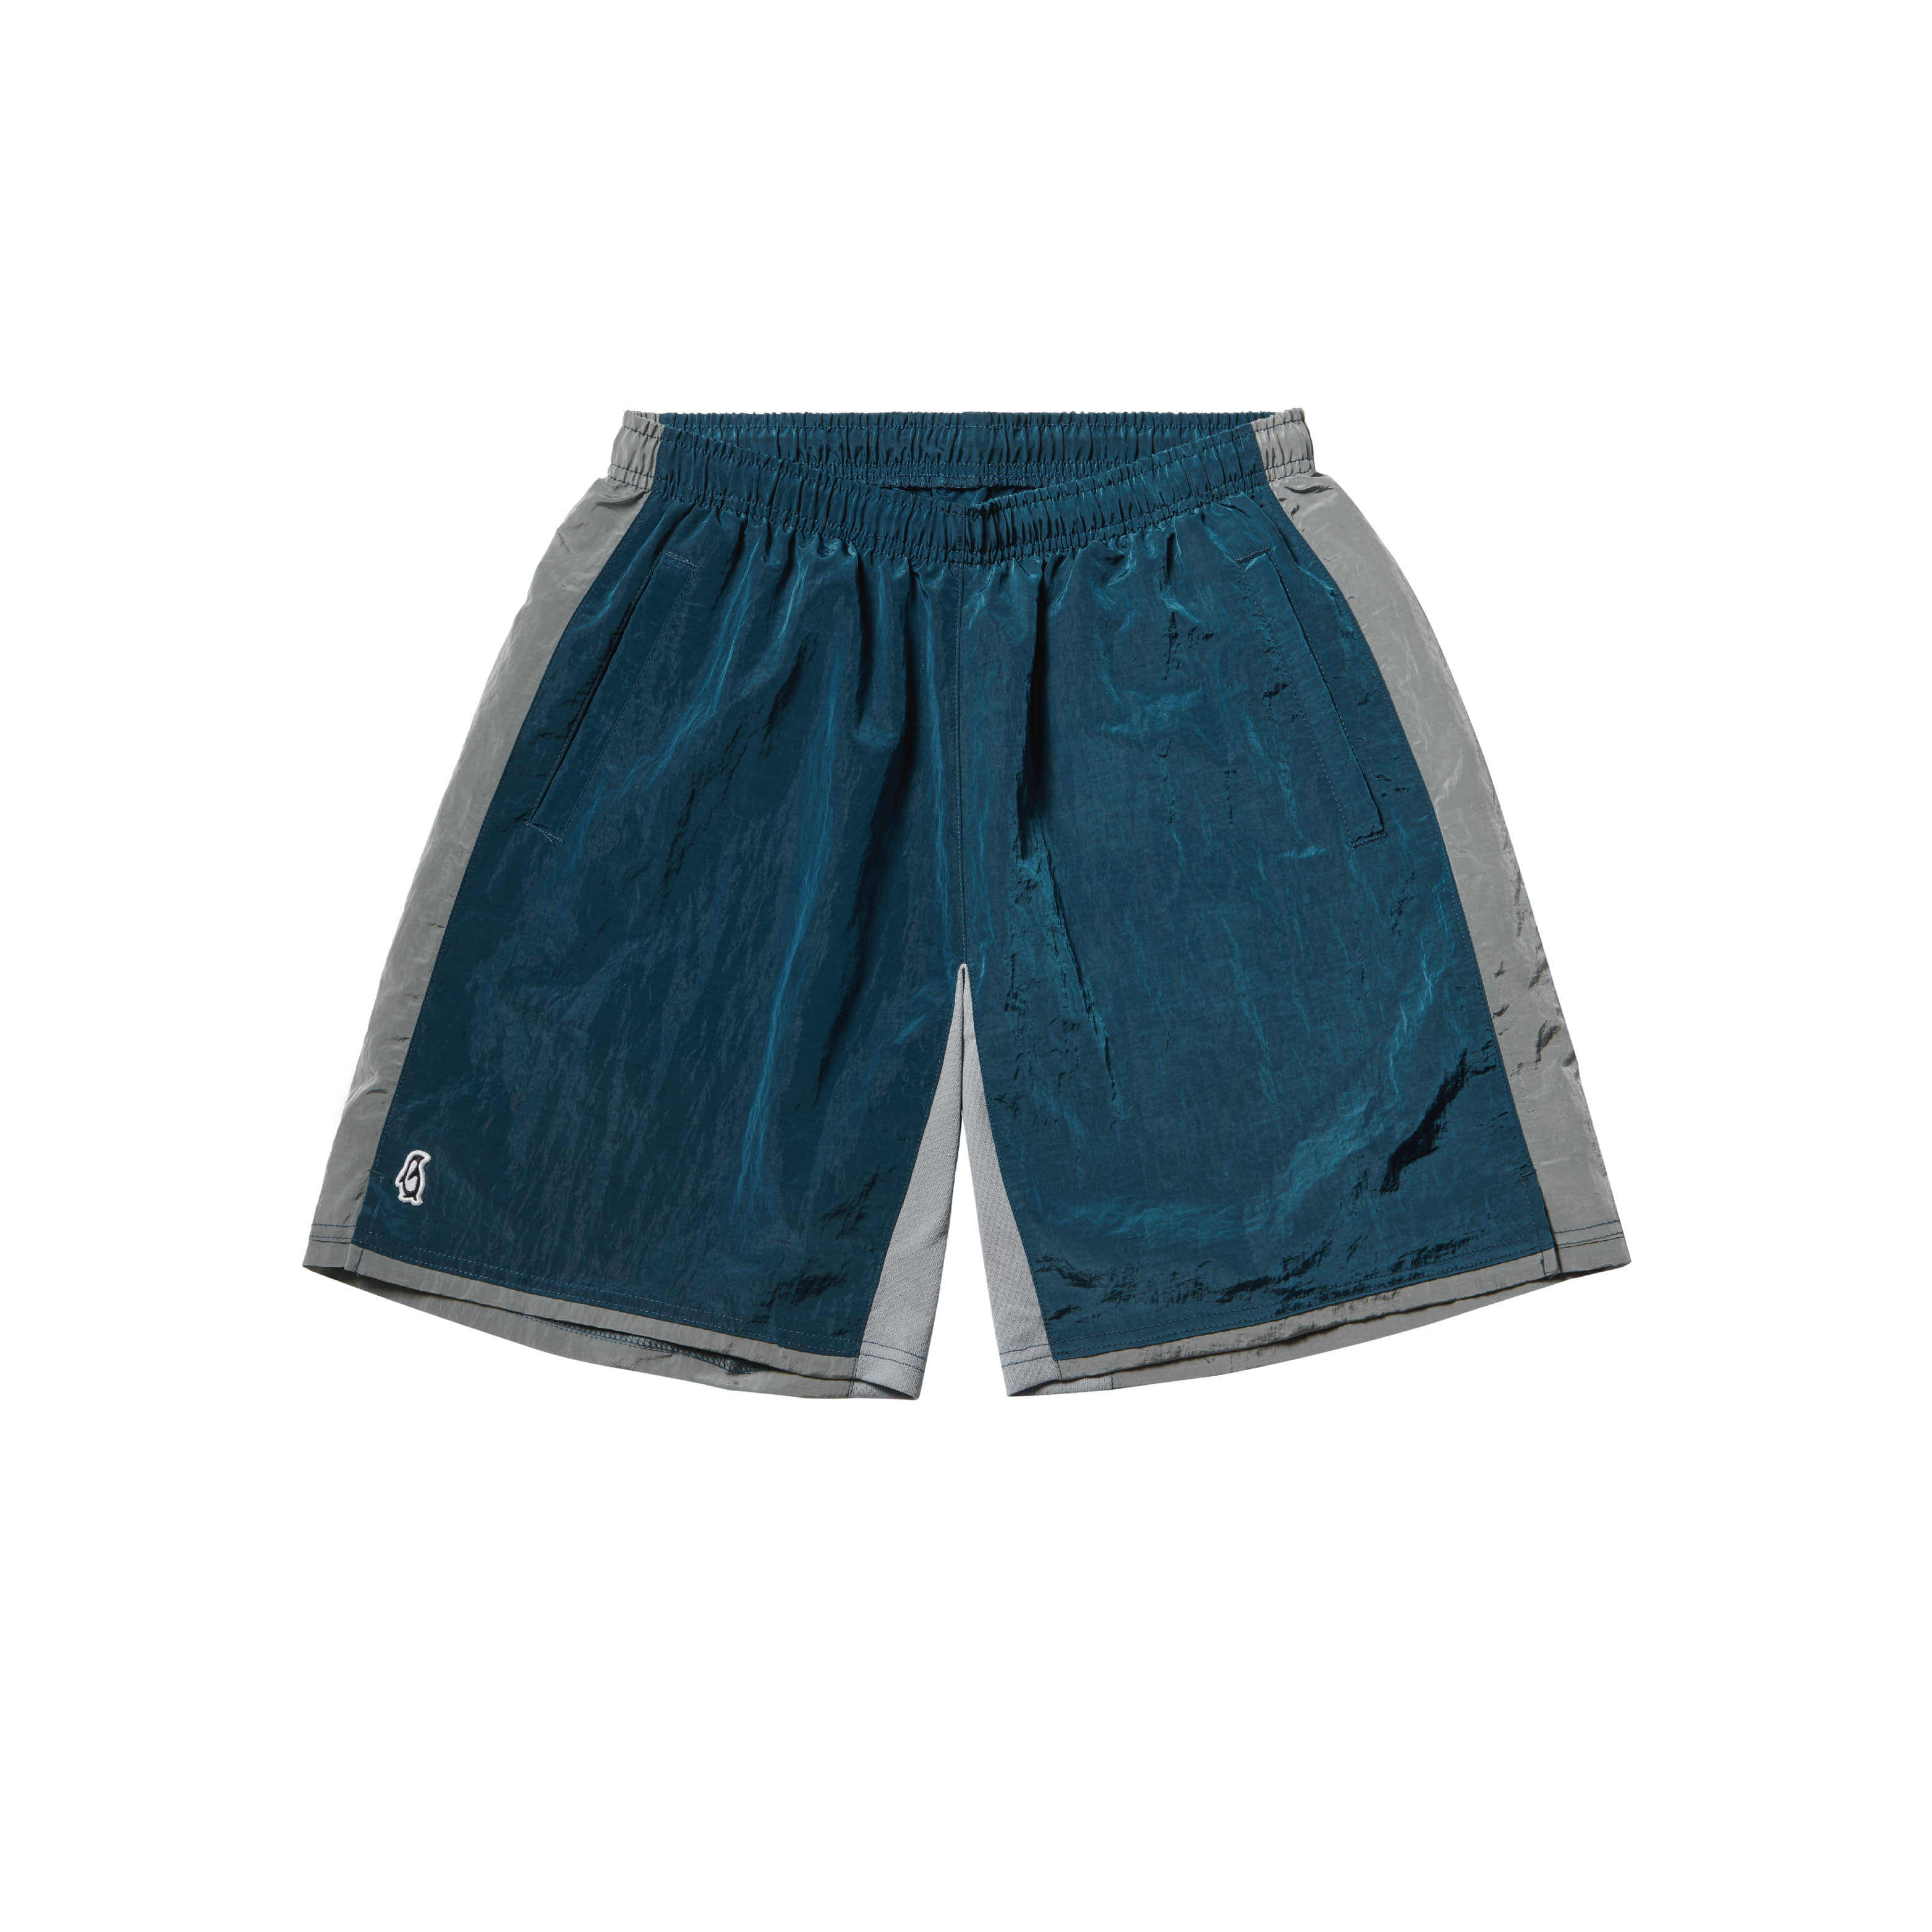 Paul Garments Dying Nylon Shorts Deep Sea